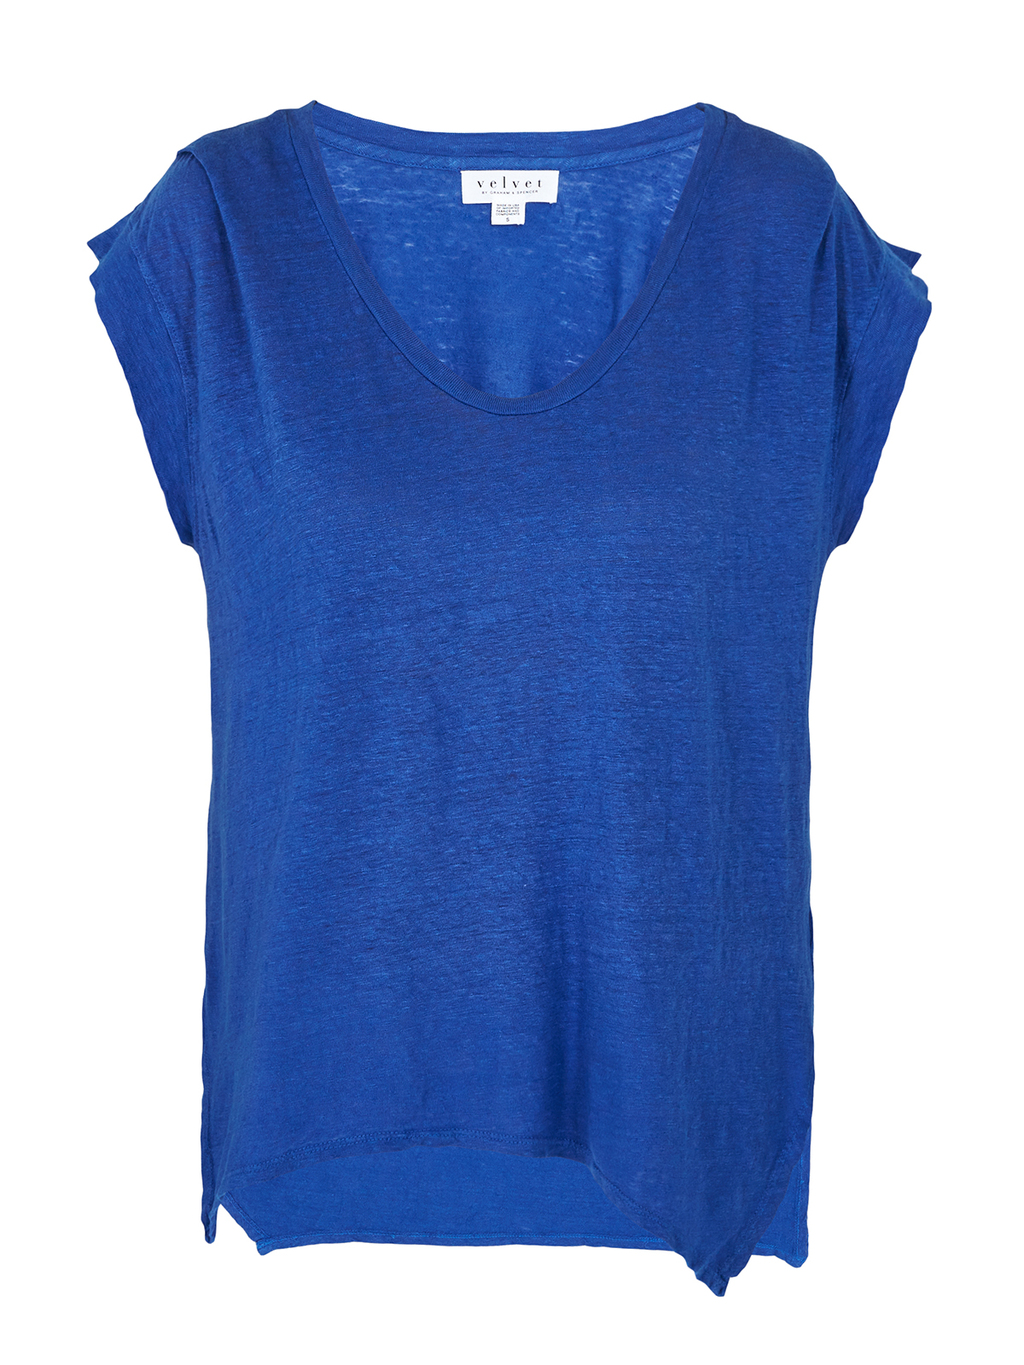 Rebekkah Cap Sleeve Top - neckline: v-neck; sleeve style: dolman/batwing; pattern: plain; predominant colour: royal blue; occasions: casual, creative work; length: standard; style: top; fibres: cotton - 100%; fit: body skimming; back detail: longer hem at back than at front; sleeve length: short sleeve; pattern type: fabric; texture group: jersey - stretchy/drapey; season: s/s 2016; wardrobe: highlight